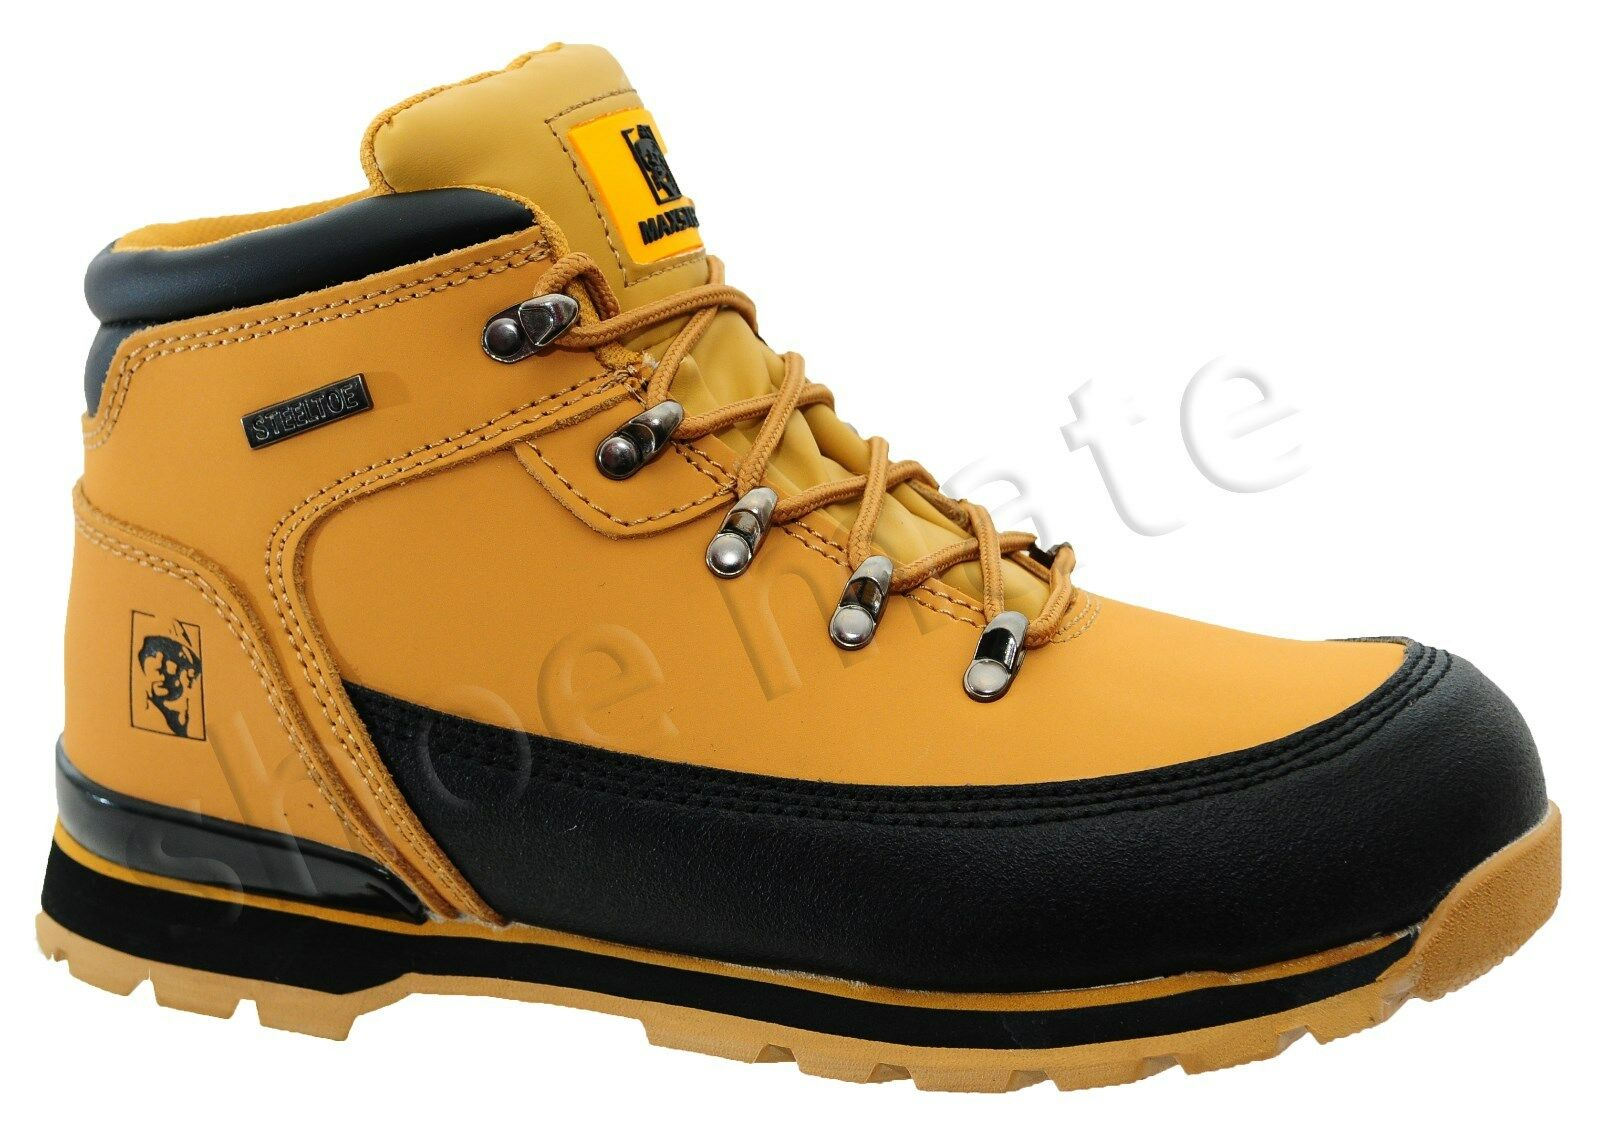 MENS LEATHER LIGHTWEIGHT STEEL TOE CAP SAFETY ANKLE WORK BOOTS SHOES TRAINERS UK